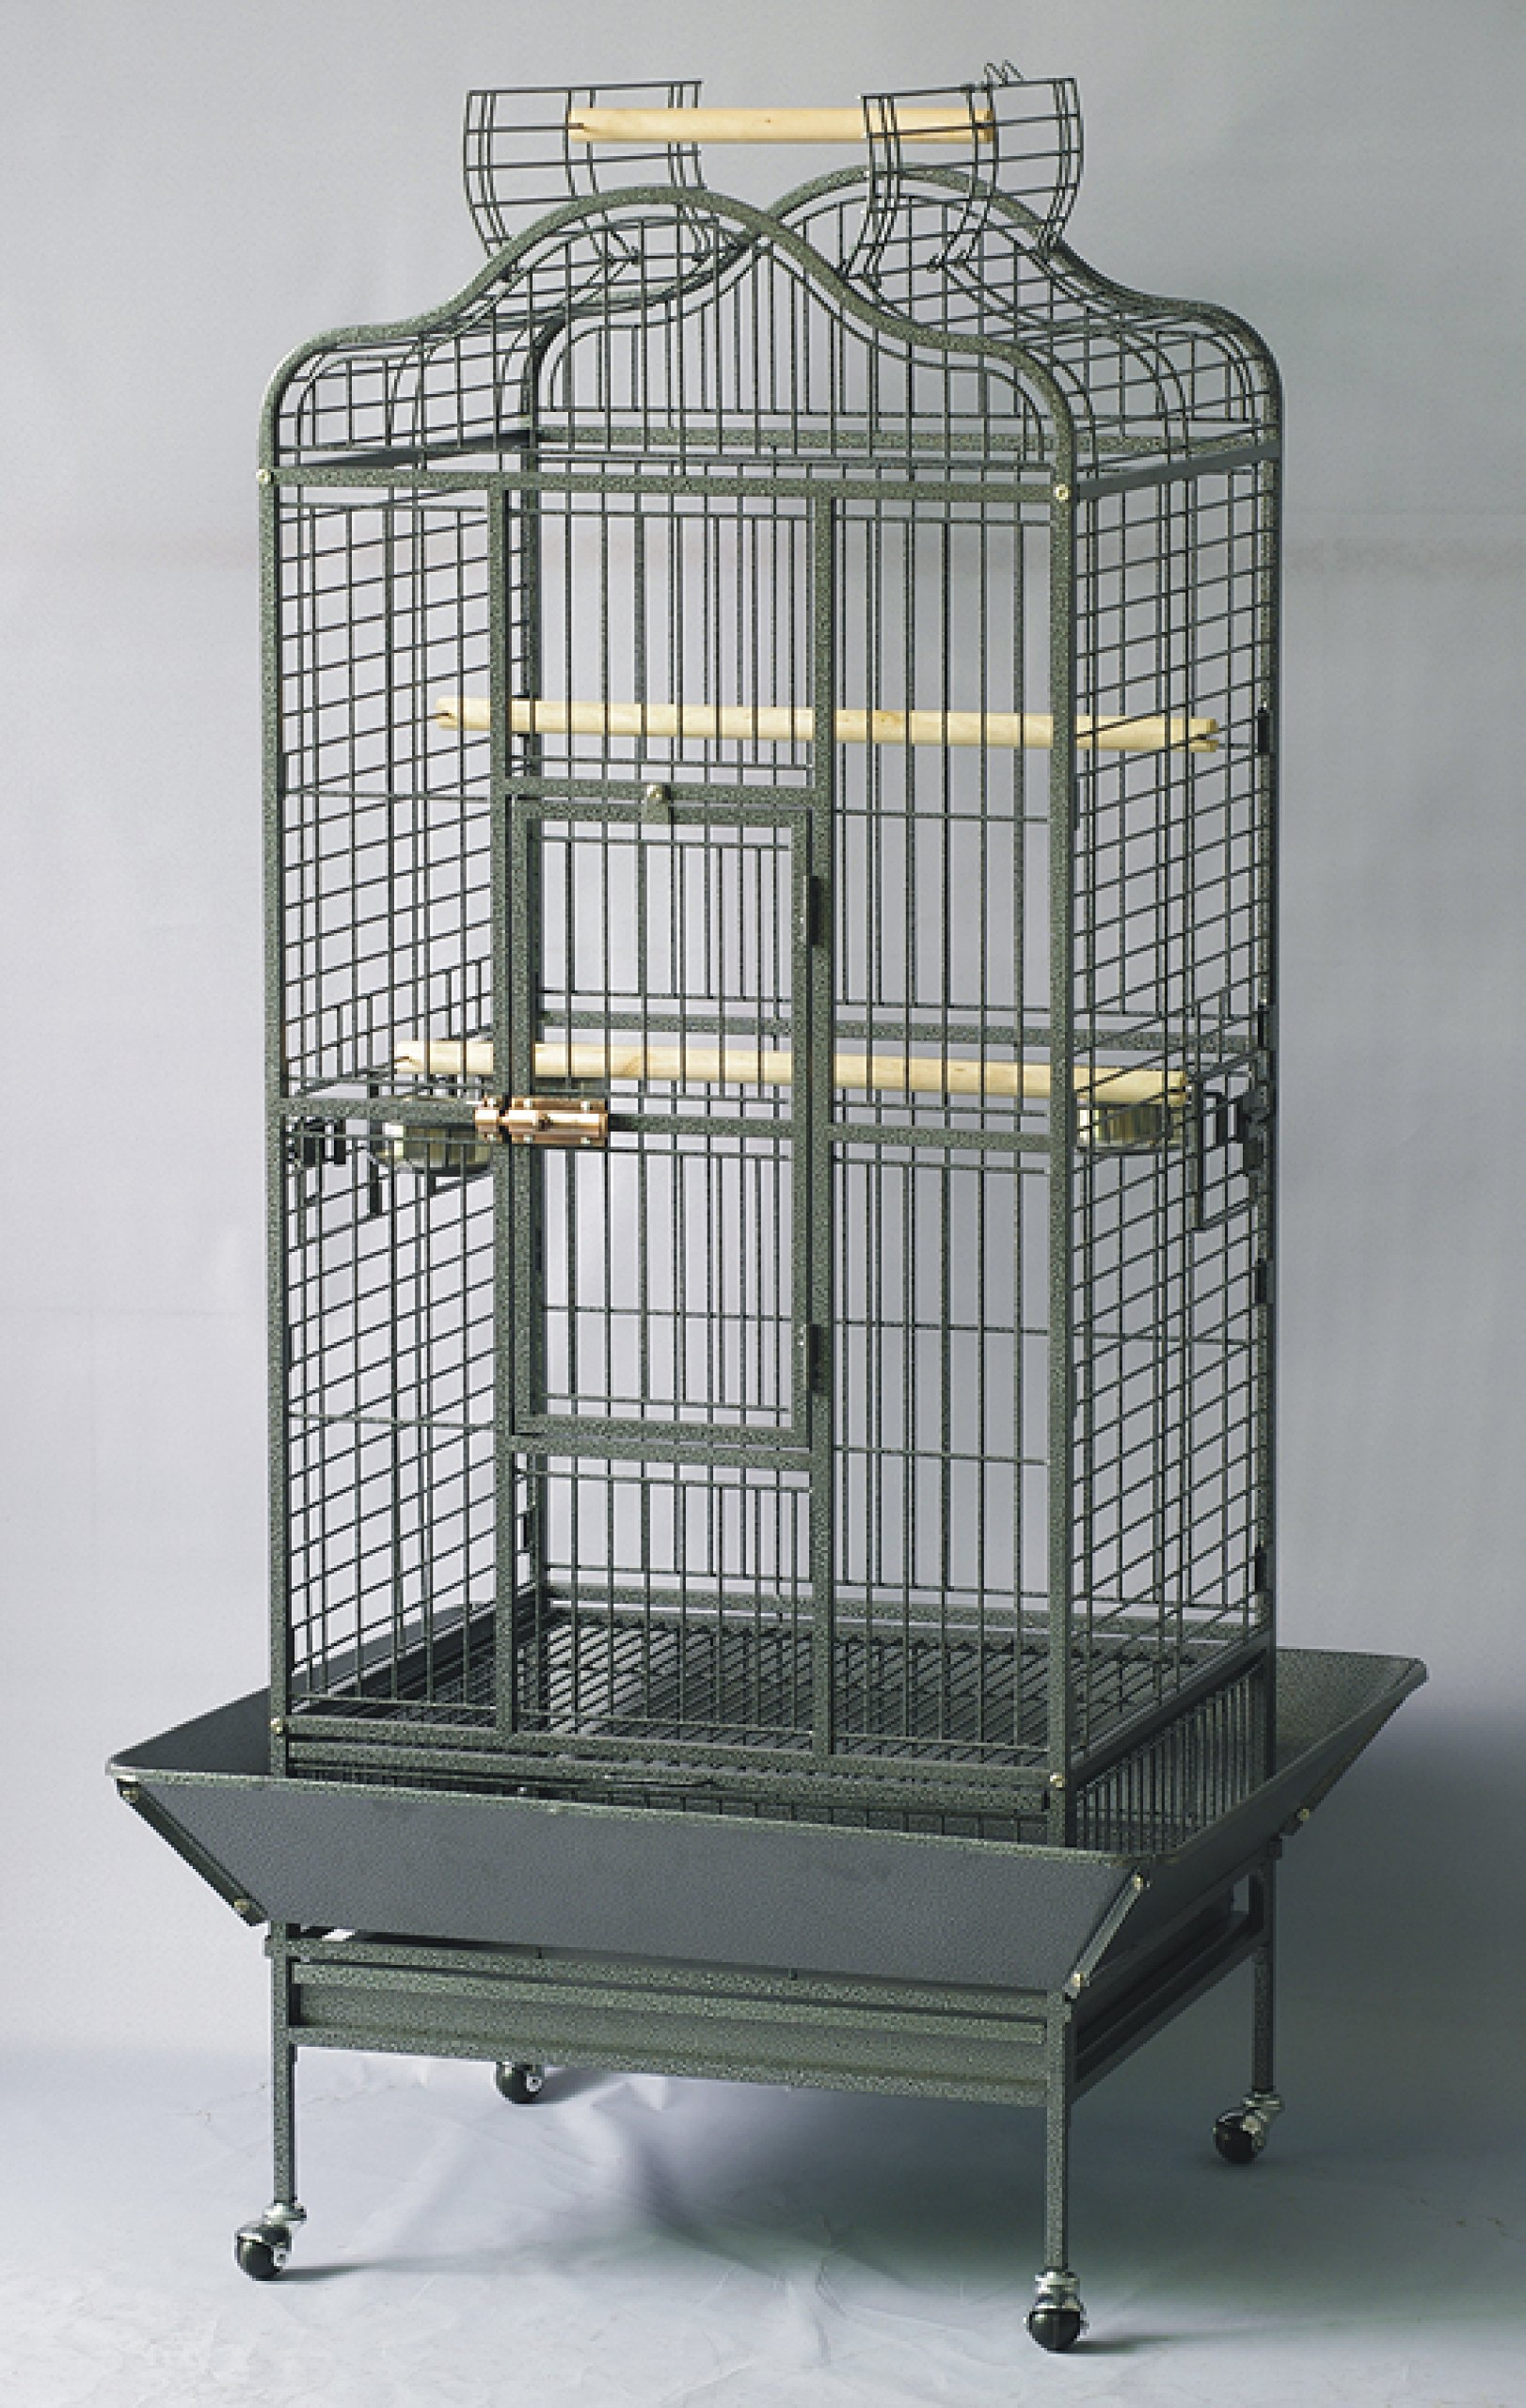 Homey Pet L24''xW22''xH61'' Large Parrot Cage, Open Playtop, Black Hammer Spray